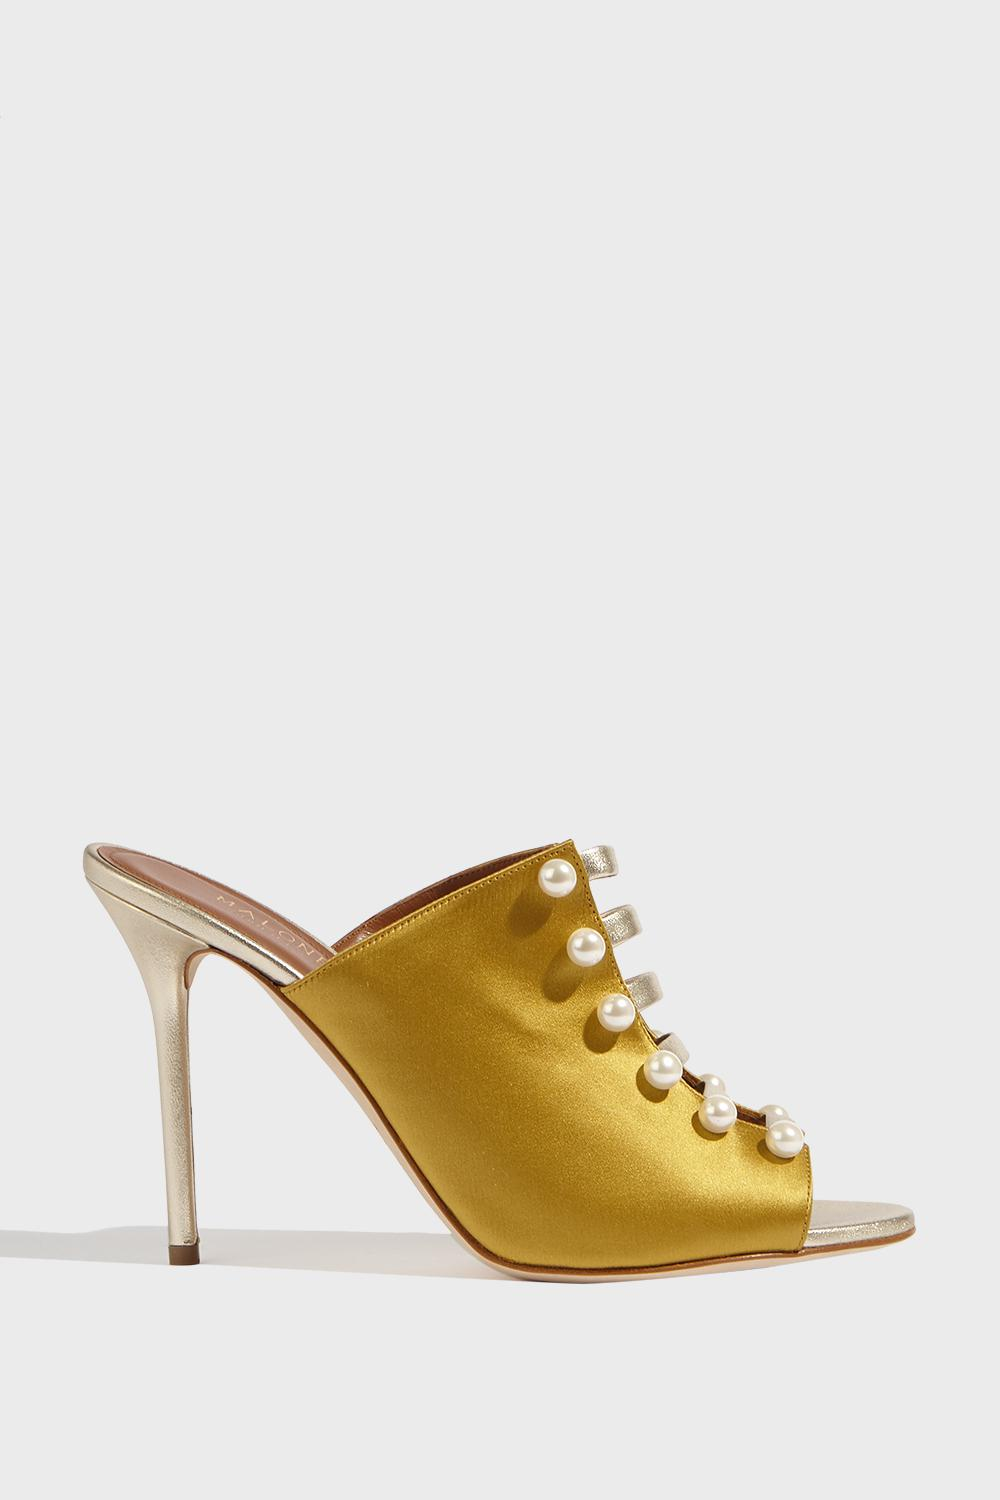 MALONE SOULIERS Pearl embellished mules Clearance Brand New Unisex Discount Geniue Stockist Buy Cheap Deals wLll8